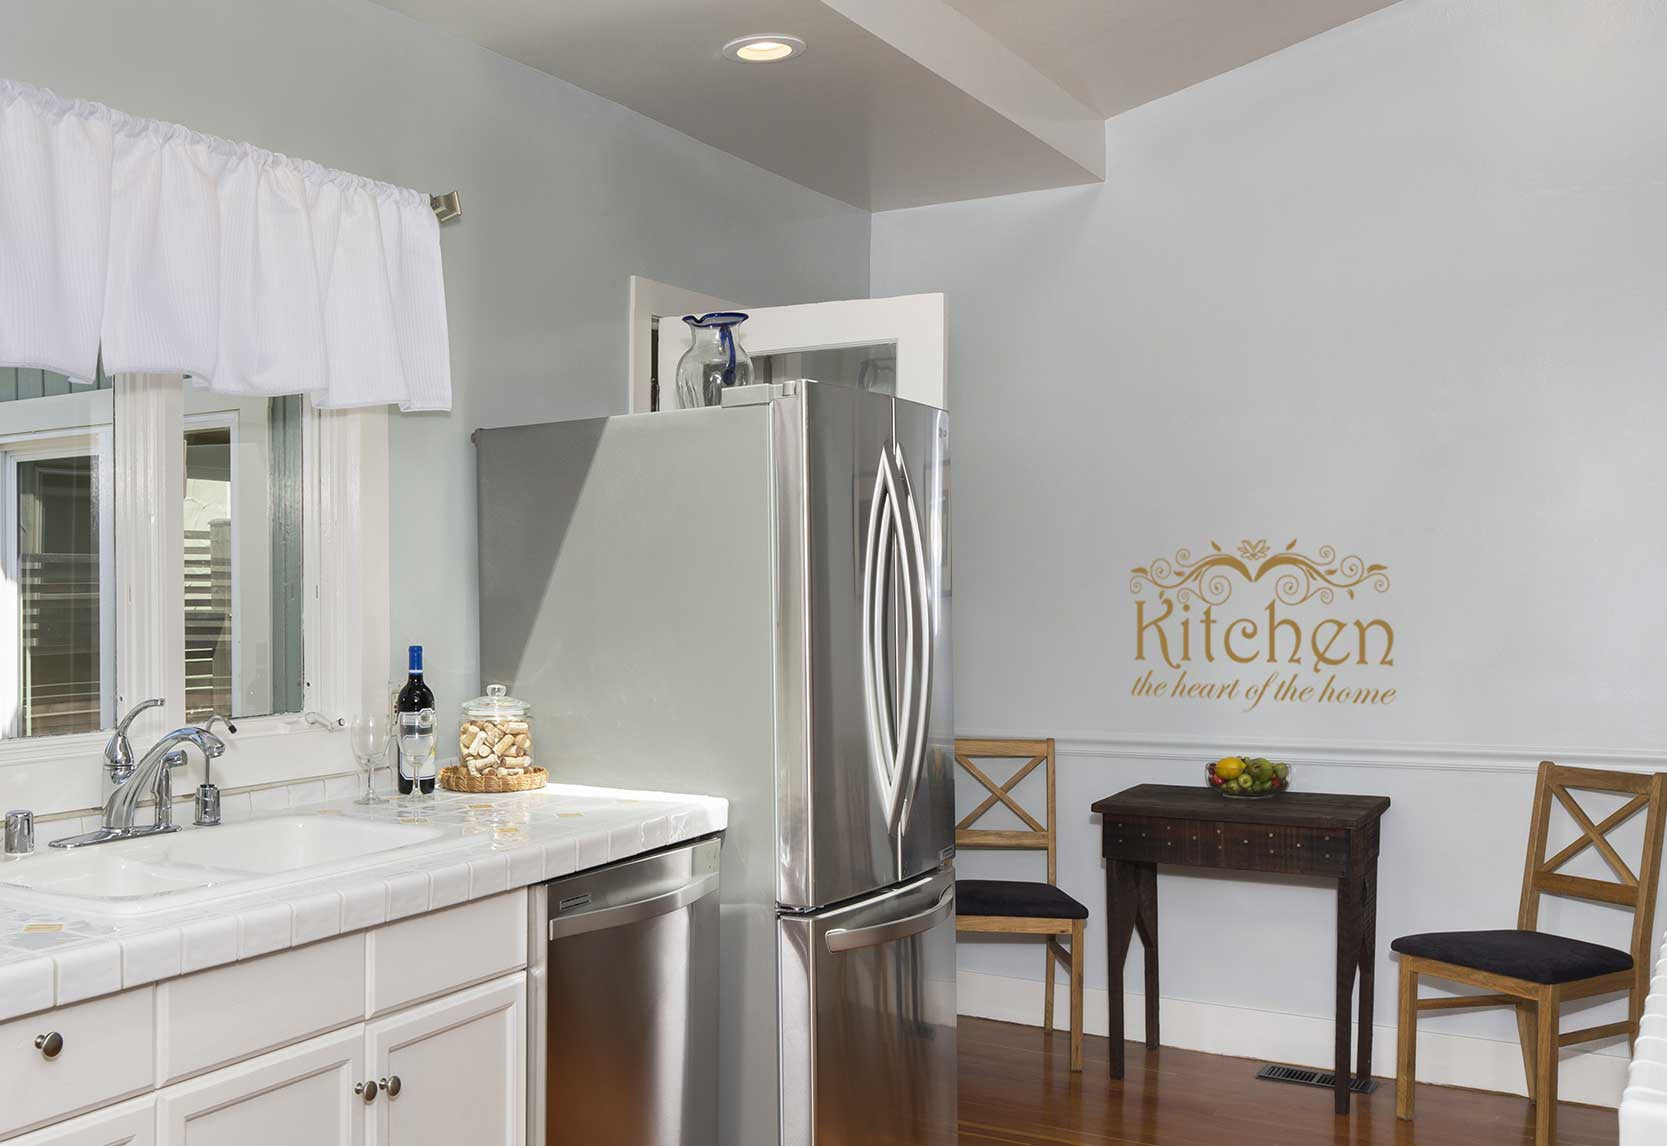 kitchen the heart of the home quote wall decal easy decals kitchen the heart of the home quote wall decal